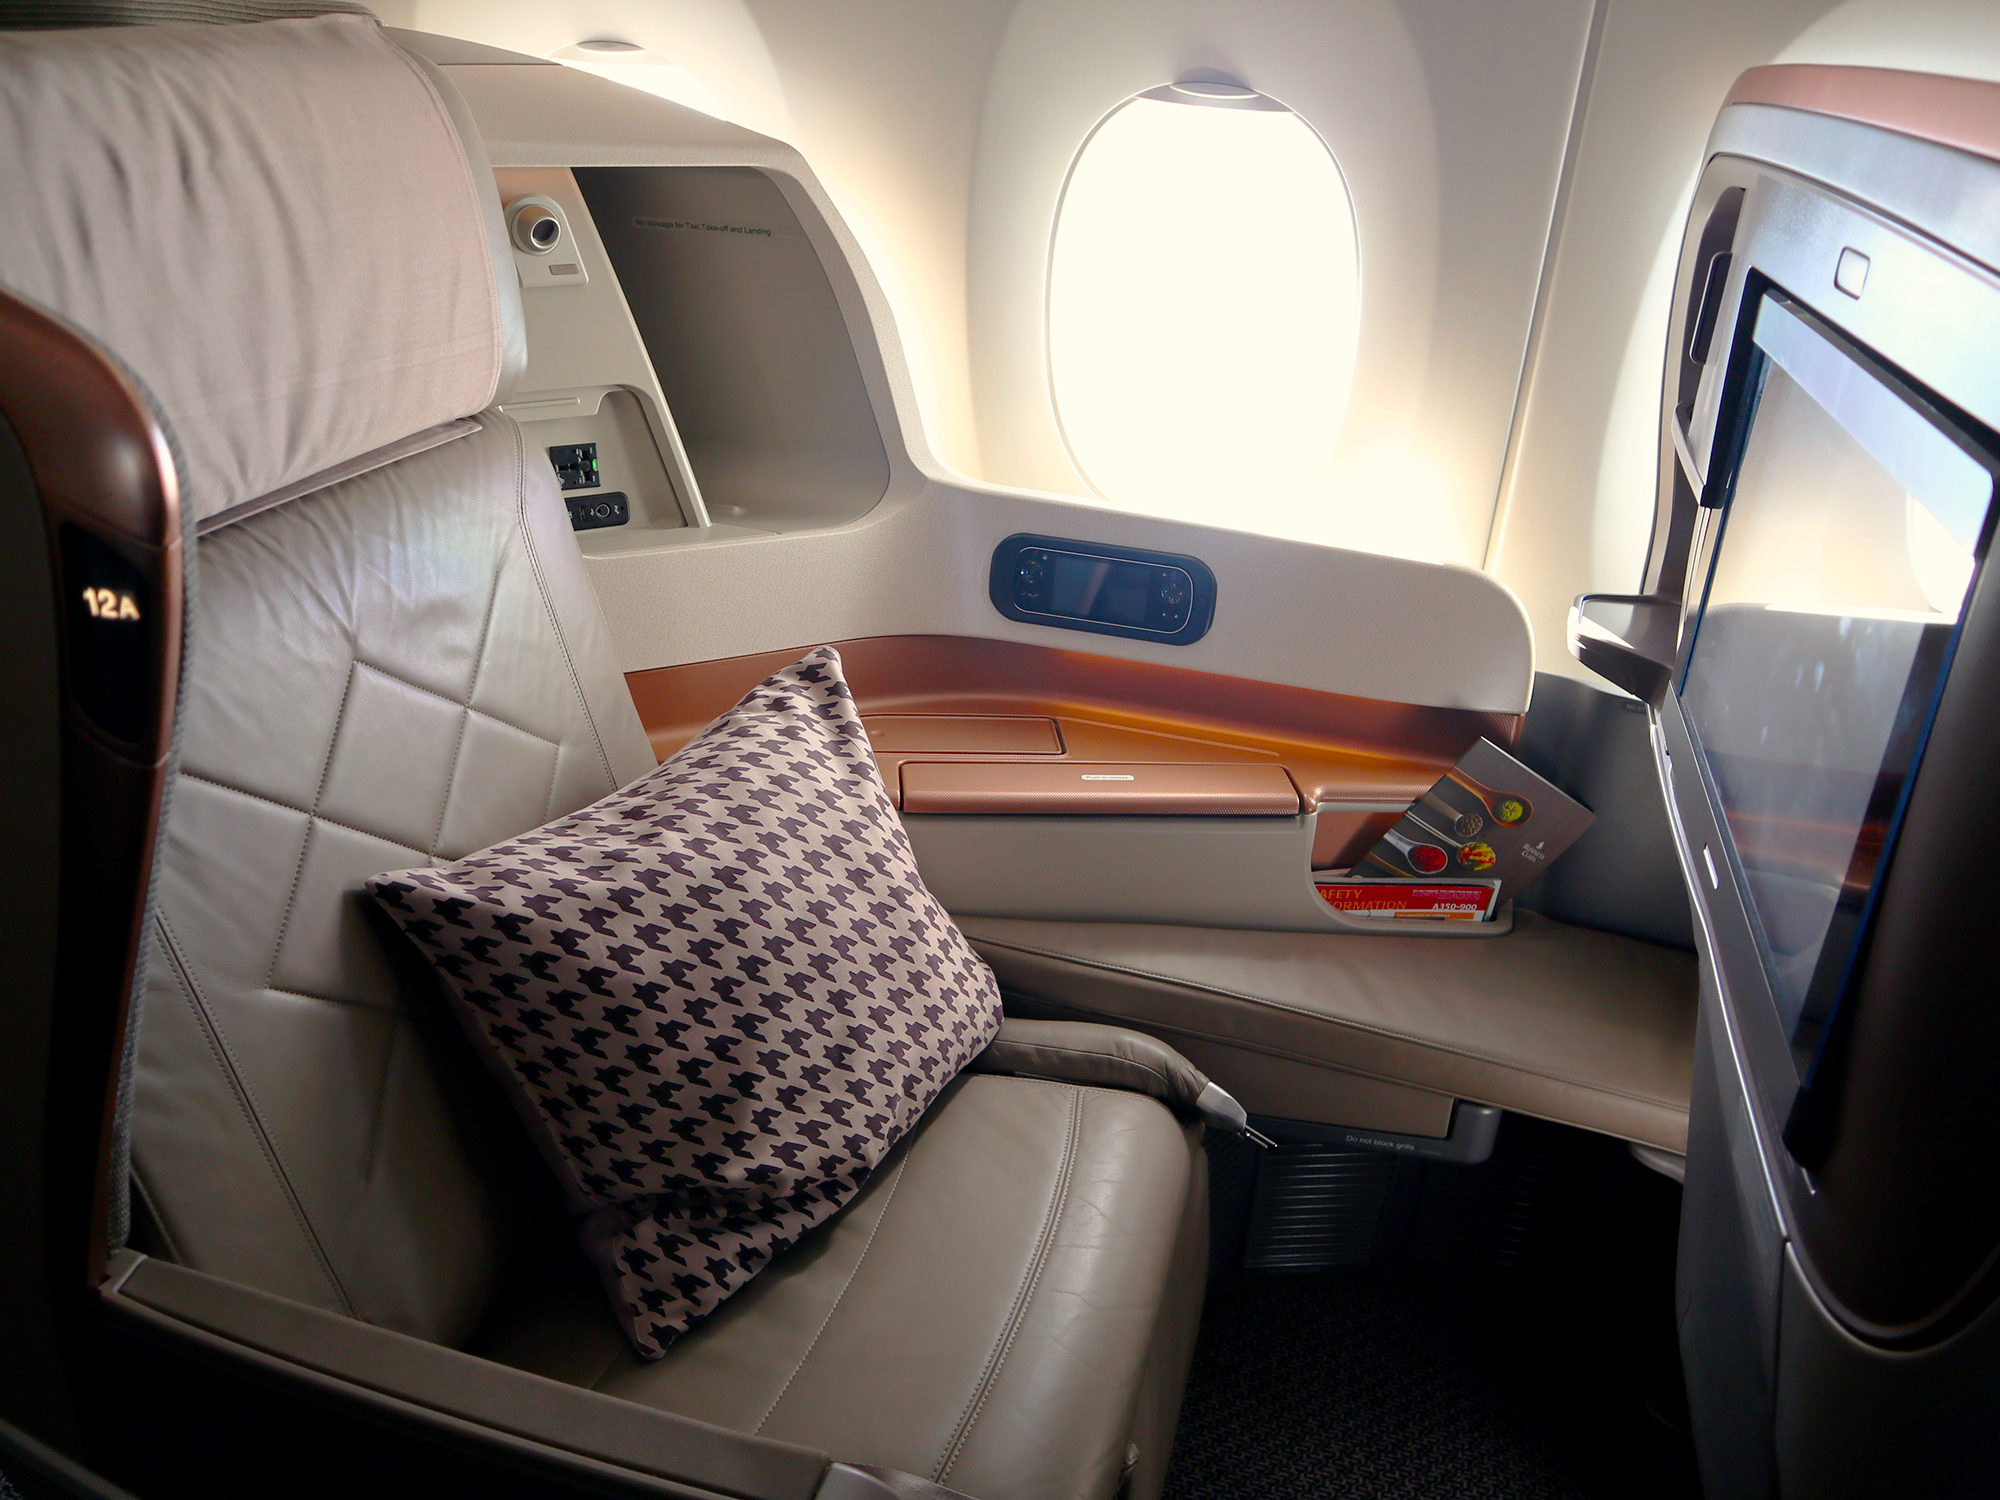 Singapore Airlines' Istanbul flights switch to the A350 from December